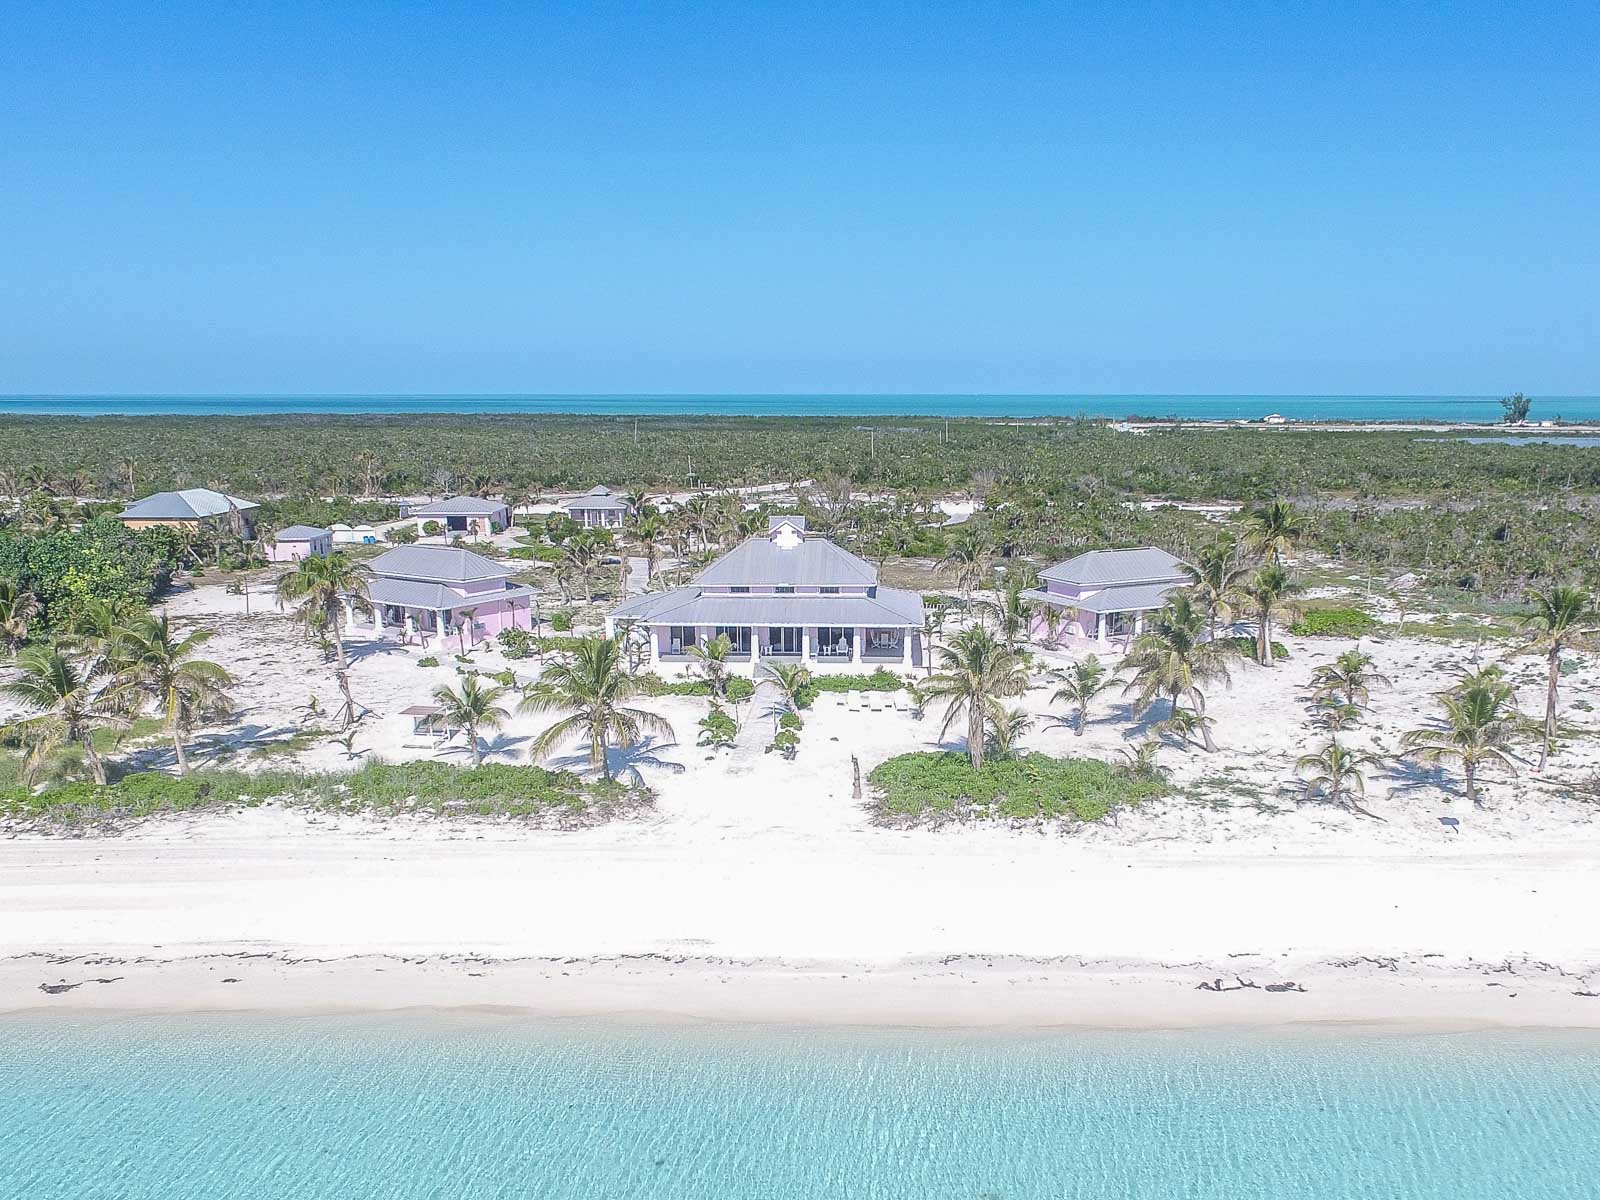 Single Family Home for Sale at Bird's Nest Estate, Chub Cay - MLS 32161 Chub Cay, Berry Islands, Bahamas